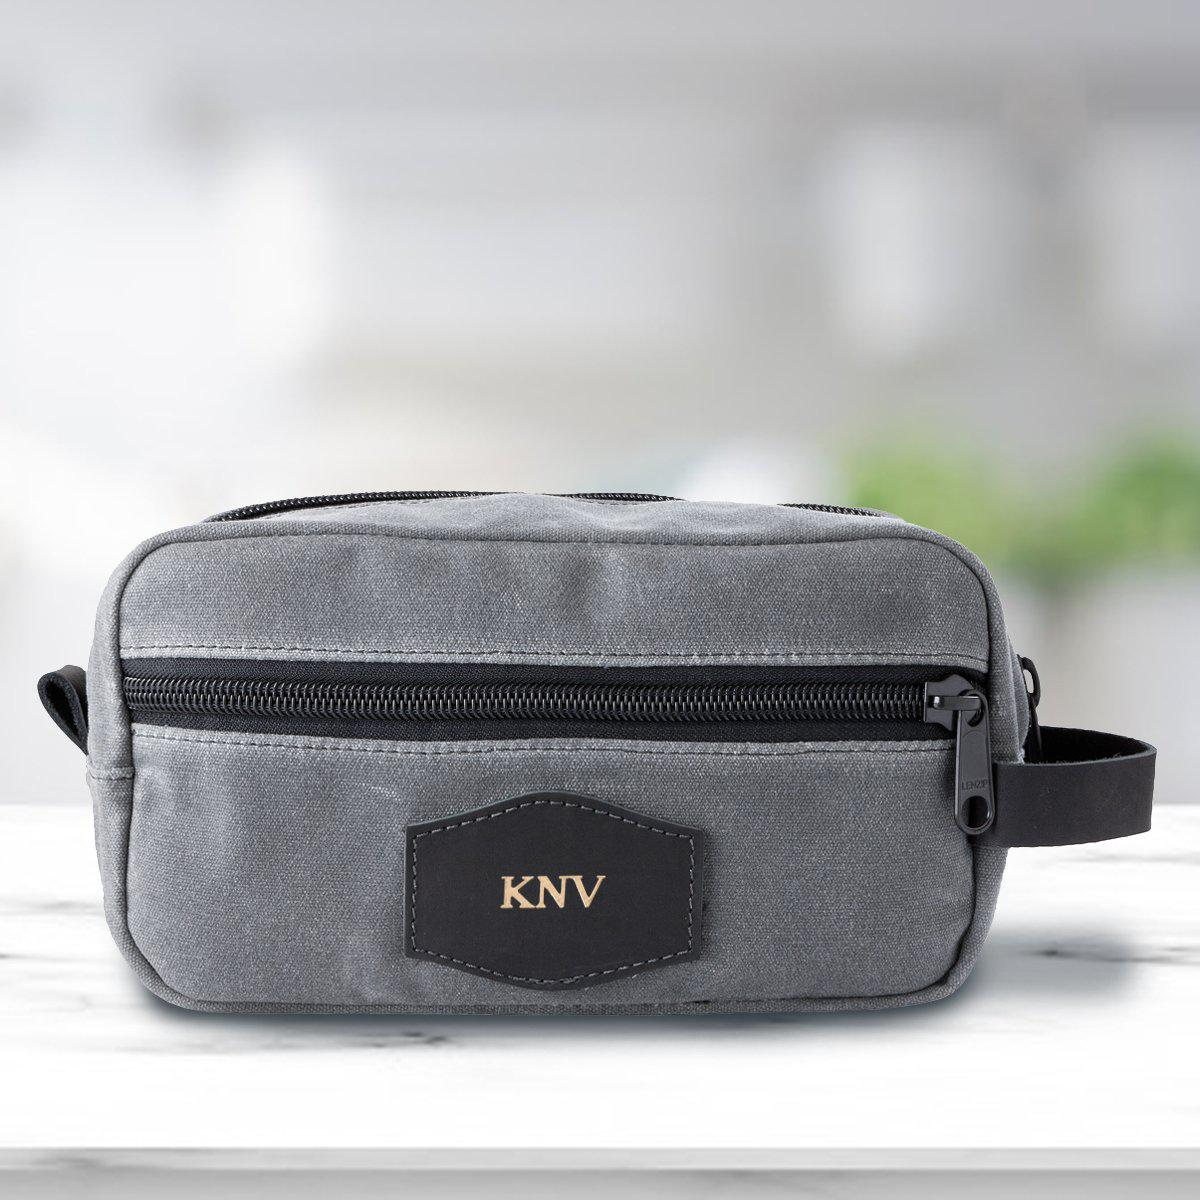 Personalized Men's Travel Bag - Waxed Canvas - Charcoal